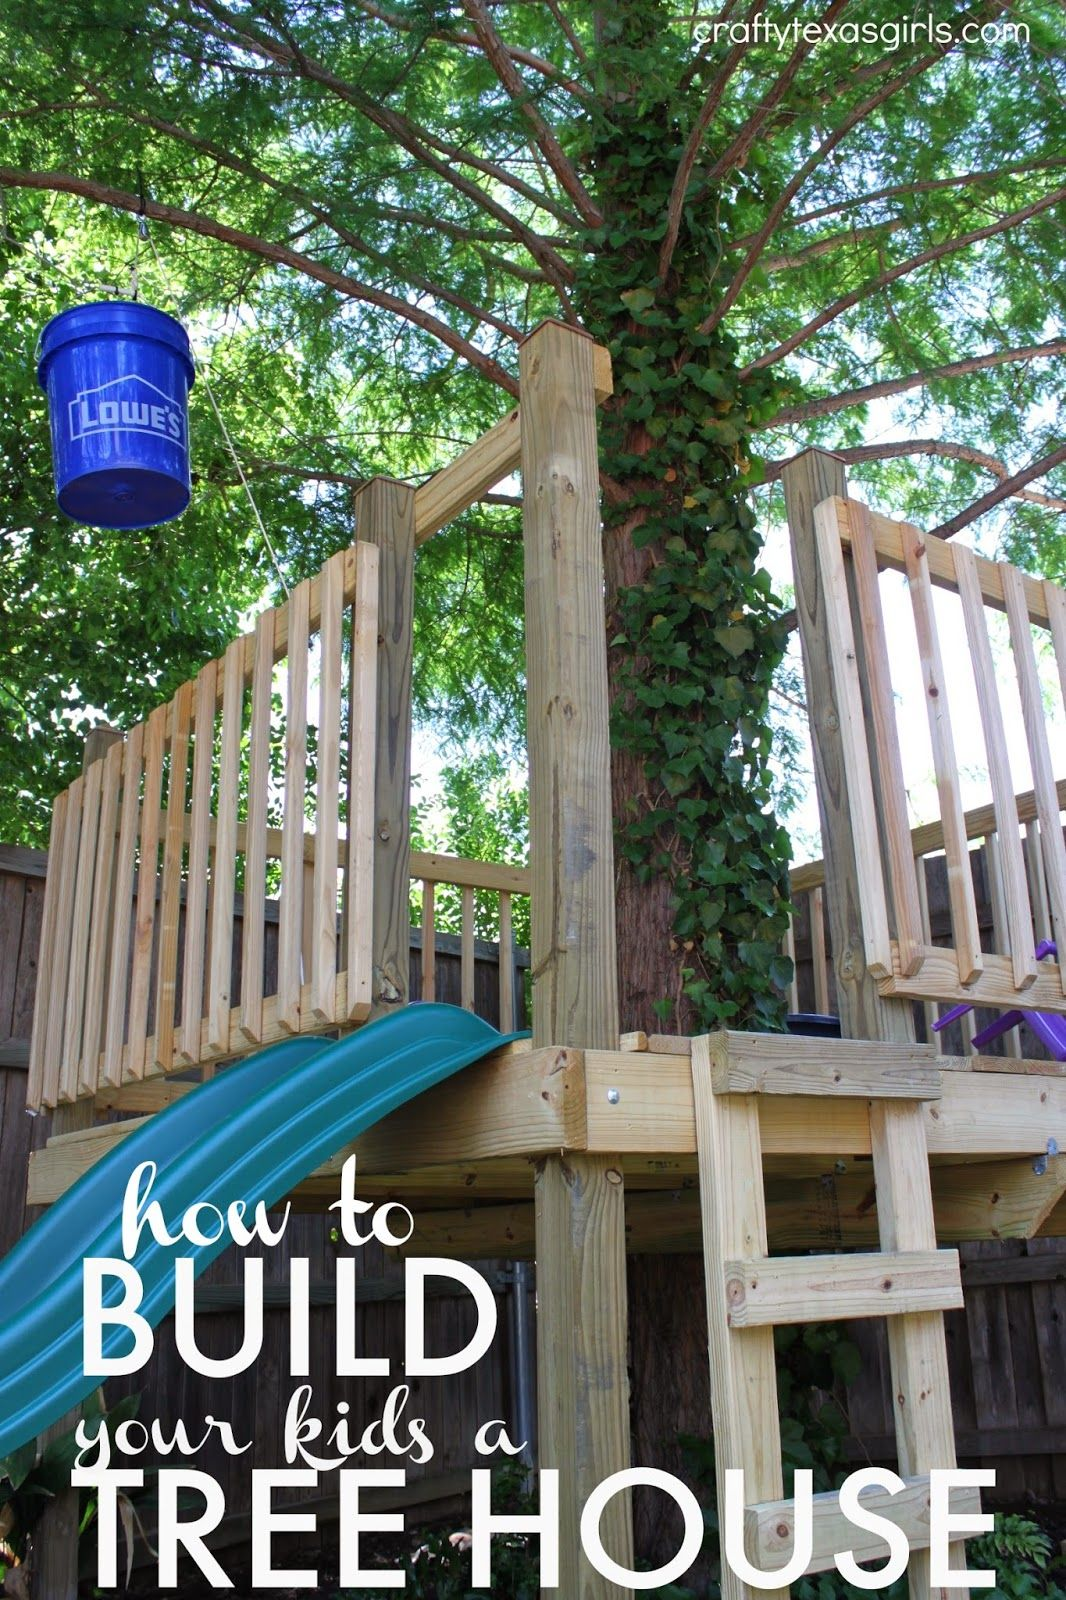 Build A Tree House With Images Tree House Plans Pallet Tree Houses Tree House Kids